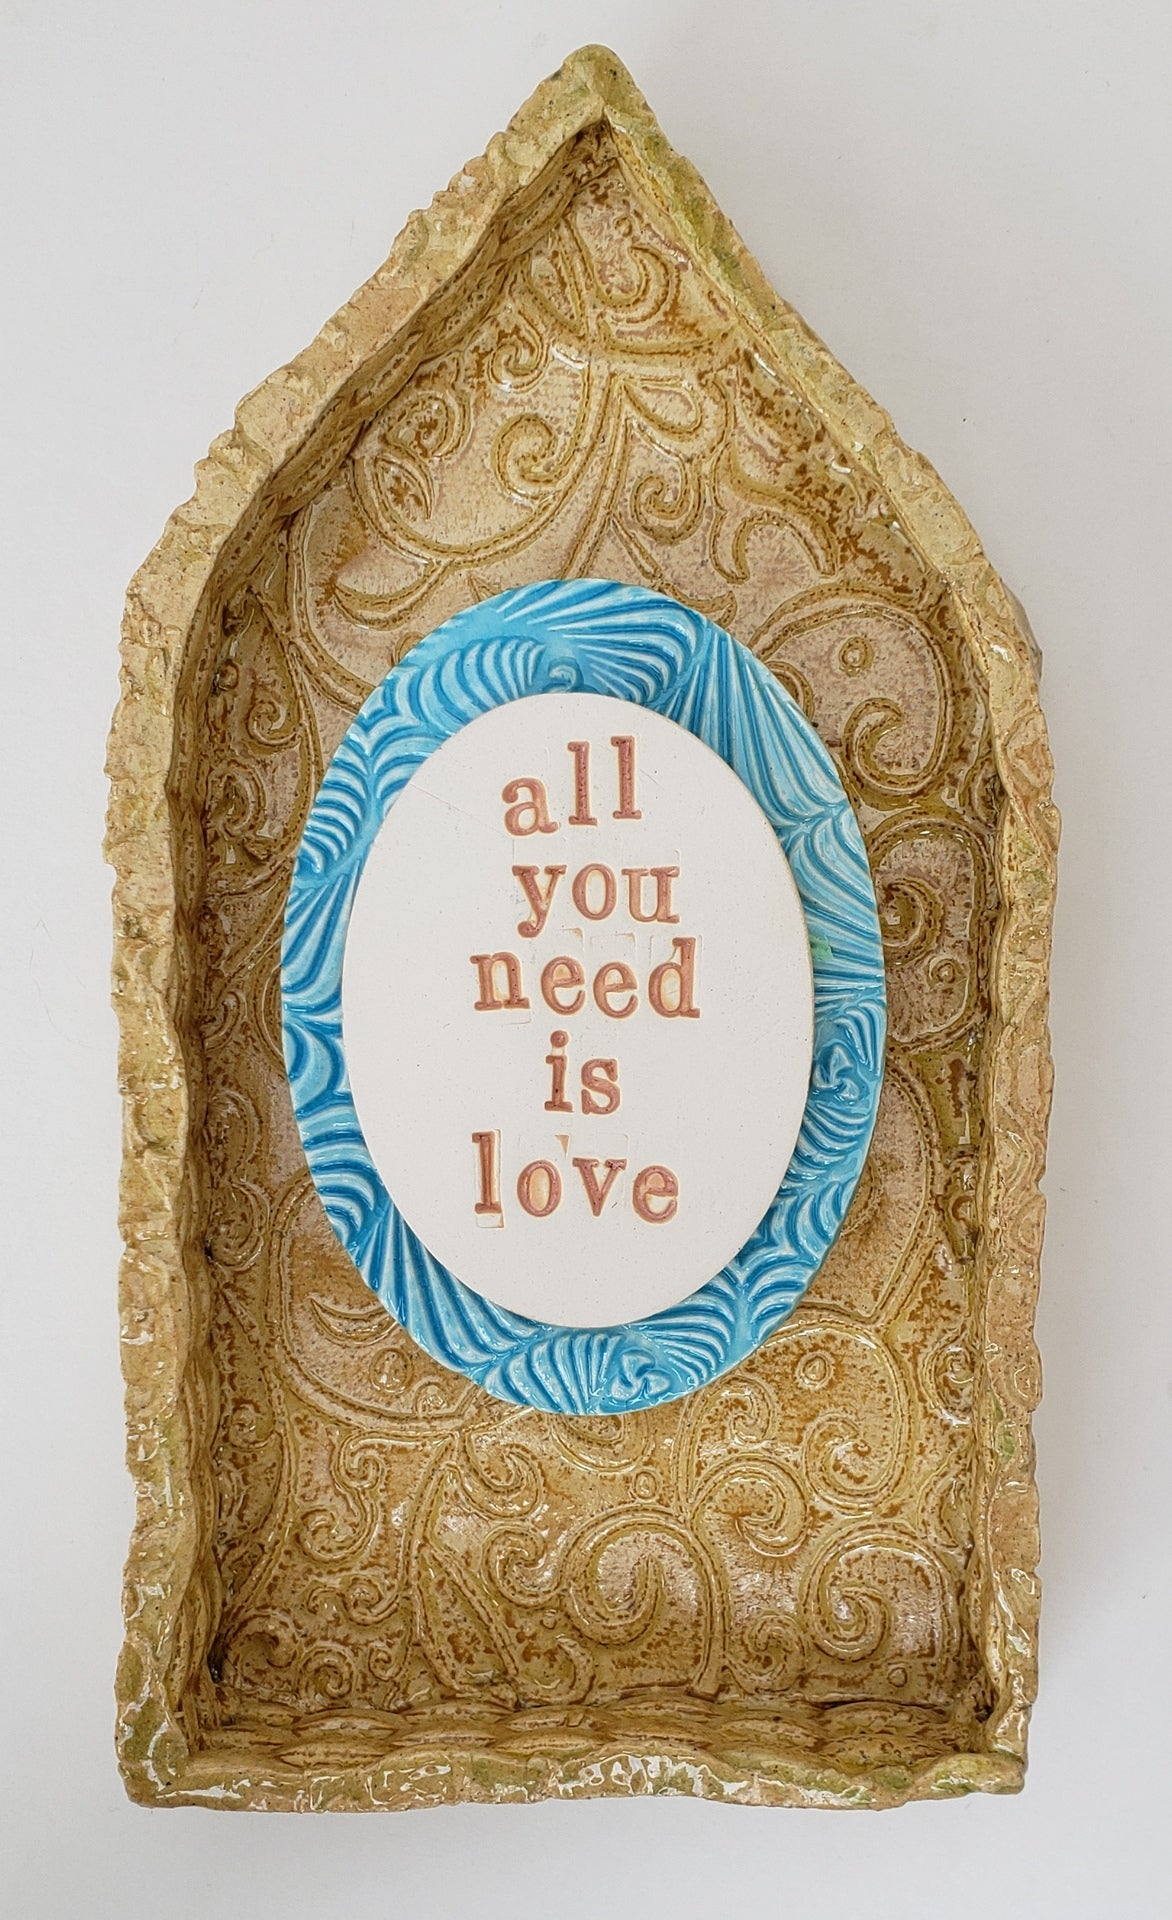 All You Need is Love House